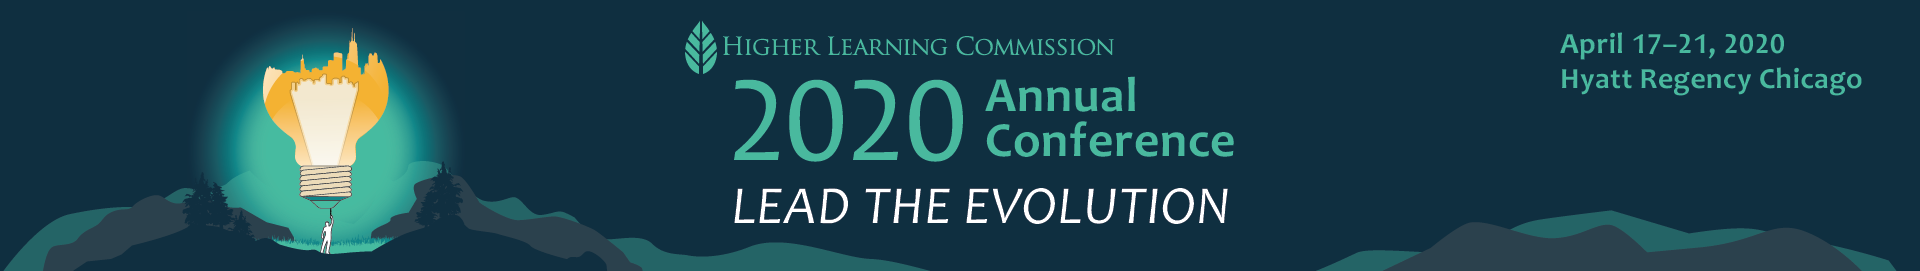 2020 Annual Conference Event Banner